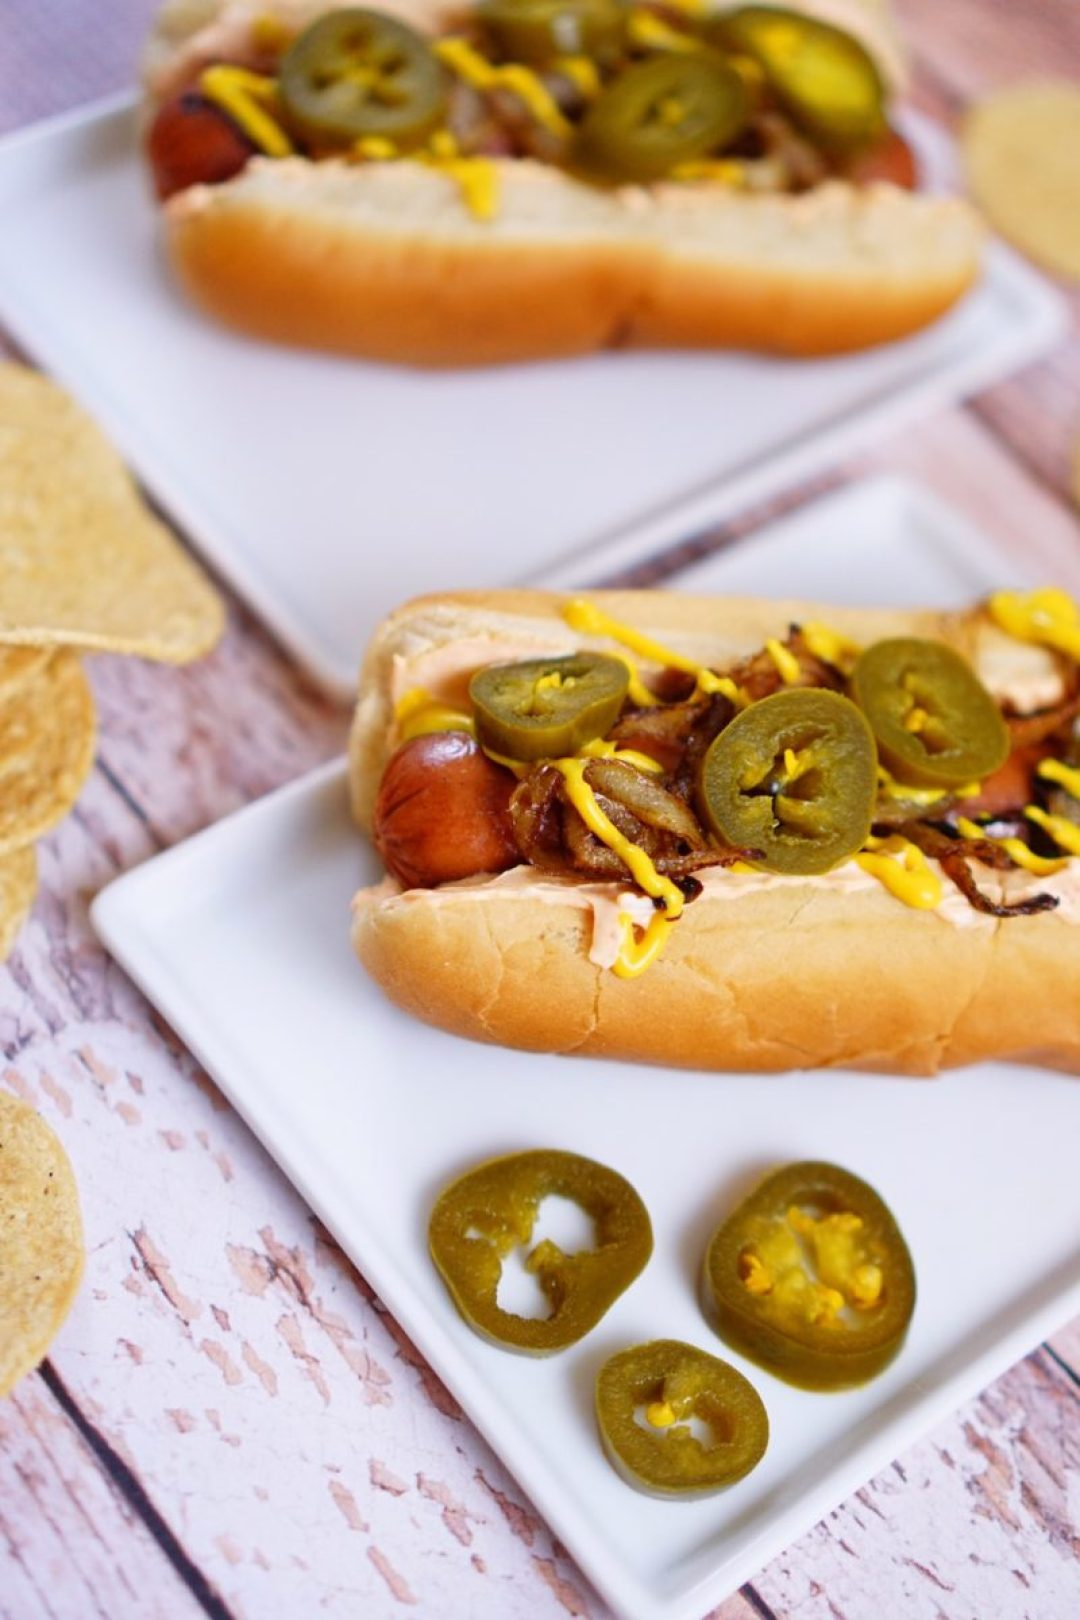 Seattle Hot Dog With Cream Cheese